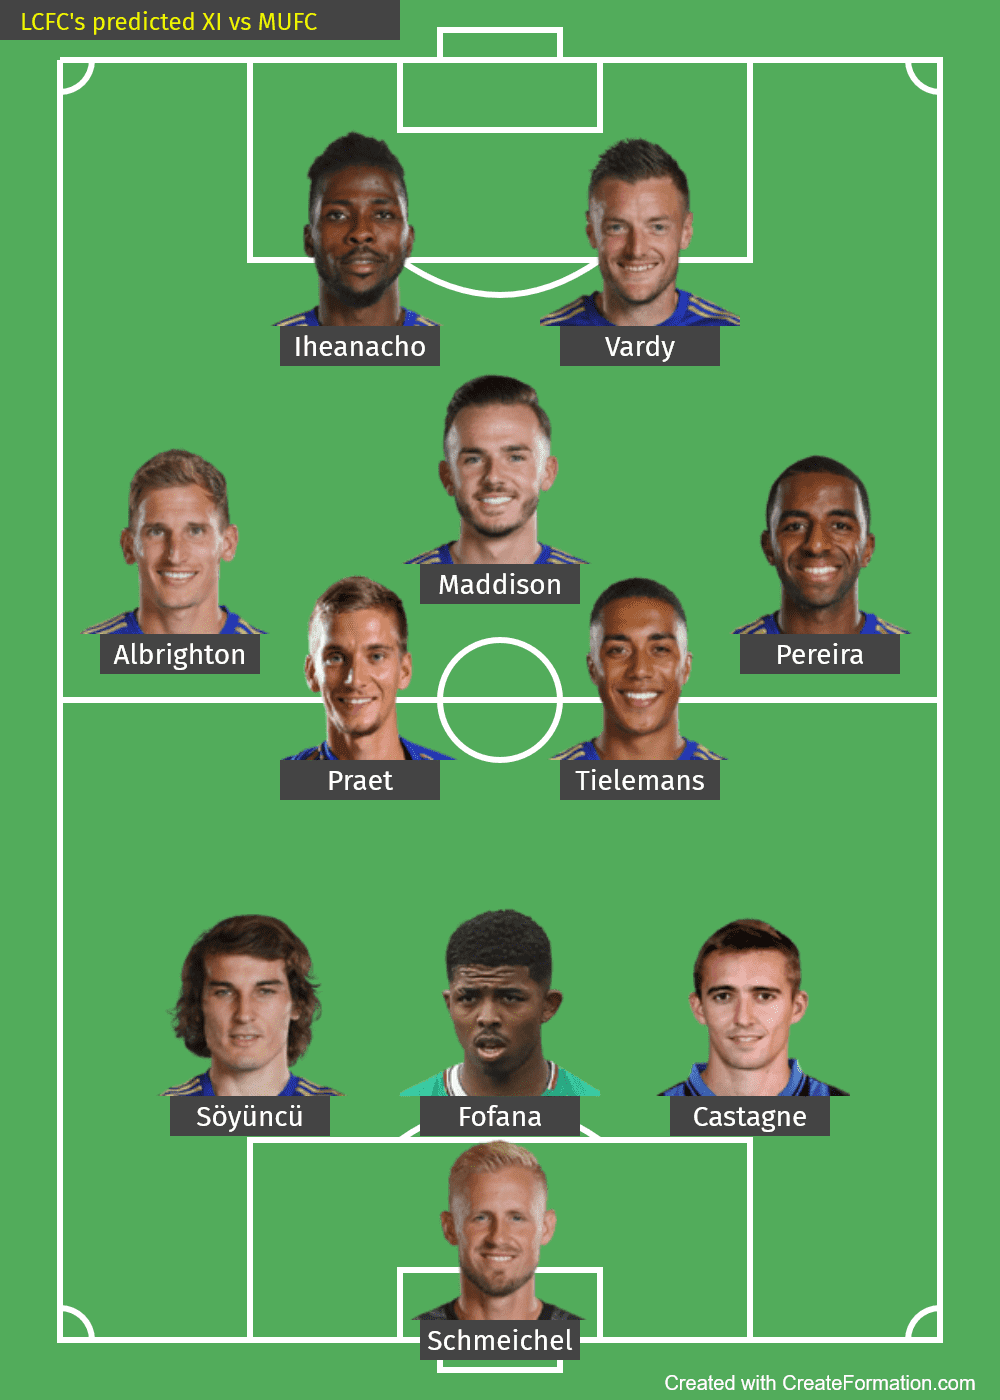 Leicester City predicted XI vs MUFC